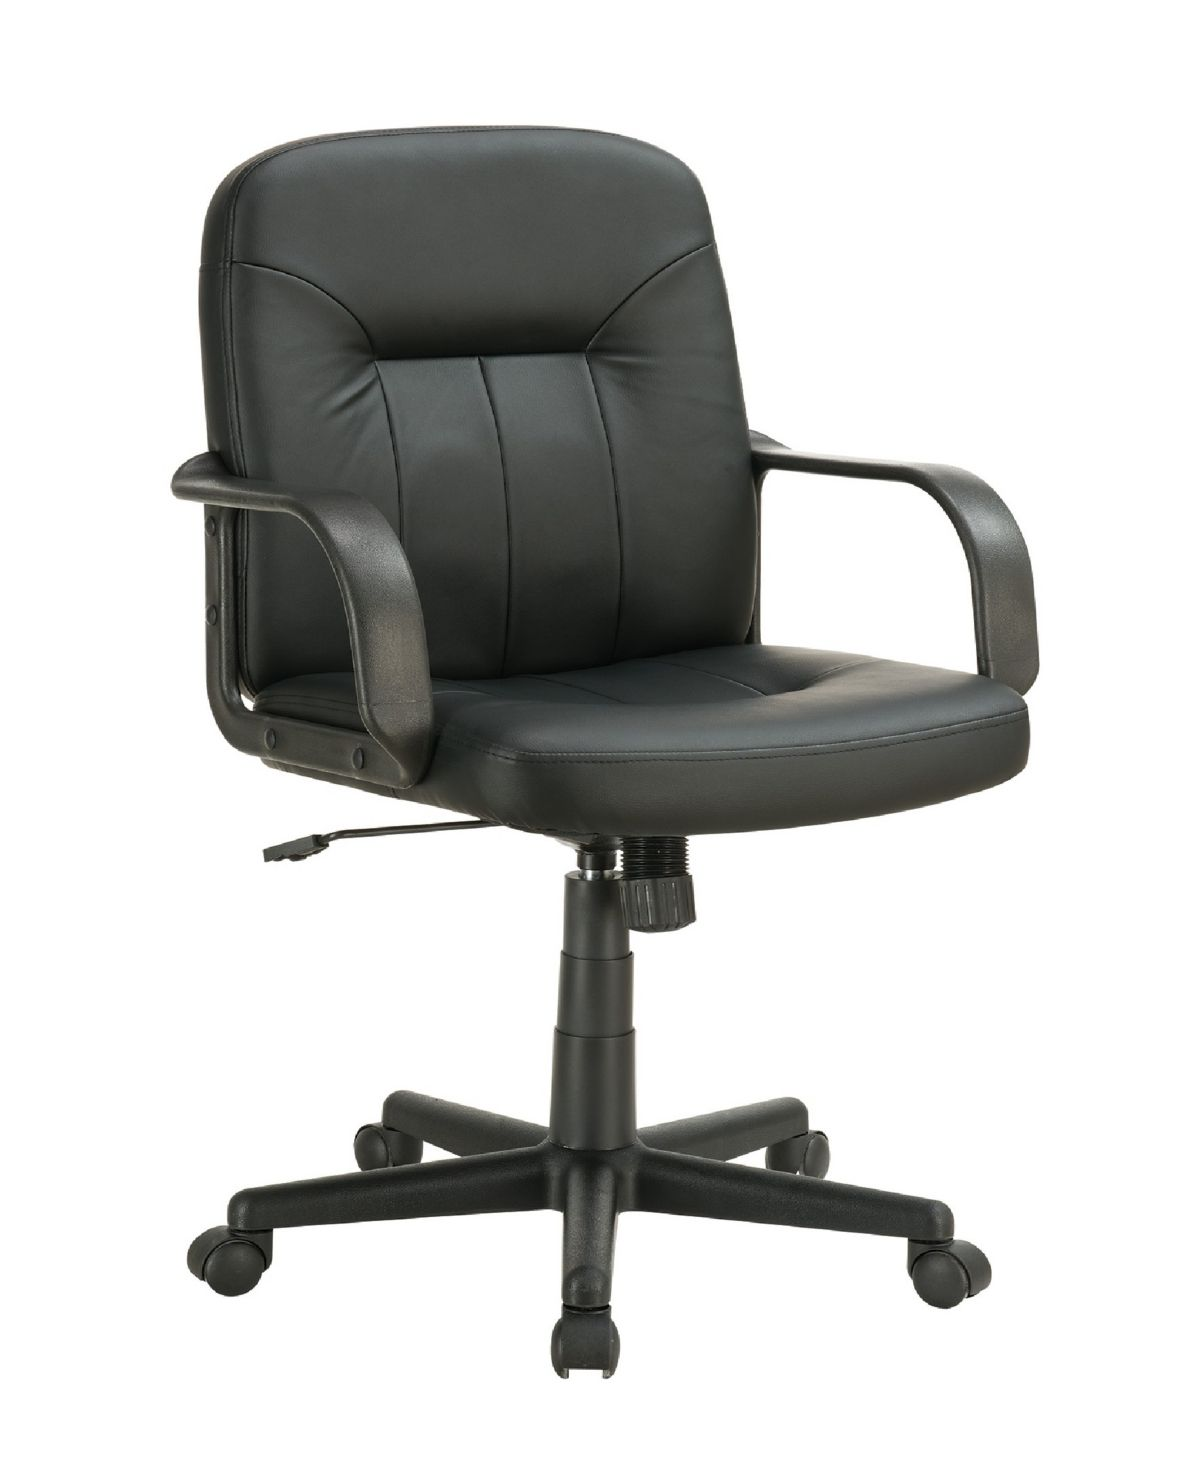 Coaster Home Furnishings Gainesville Adjustable Height Office